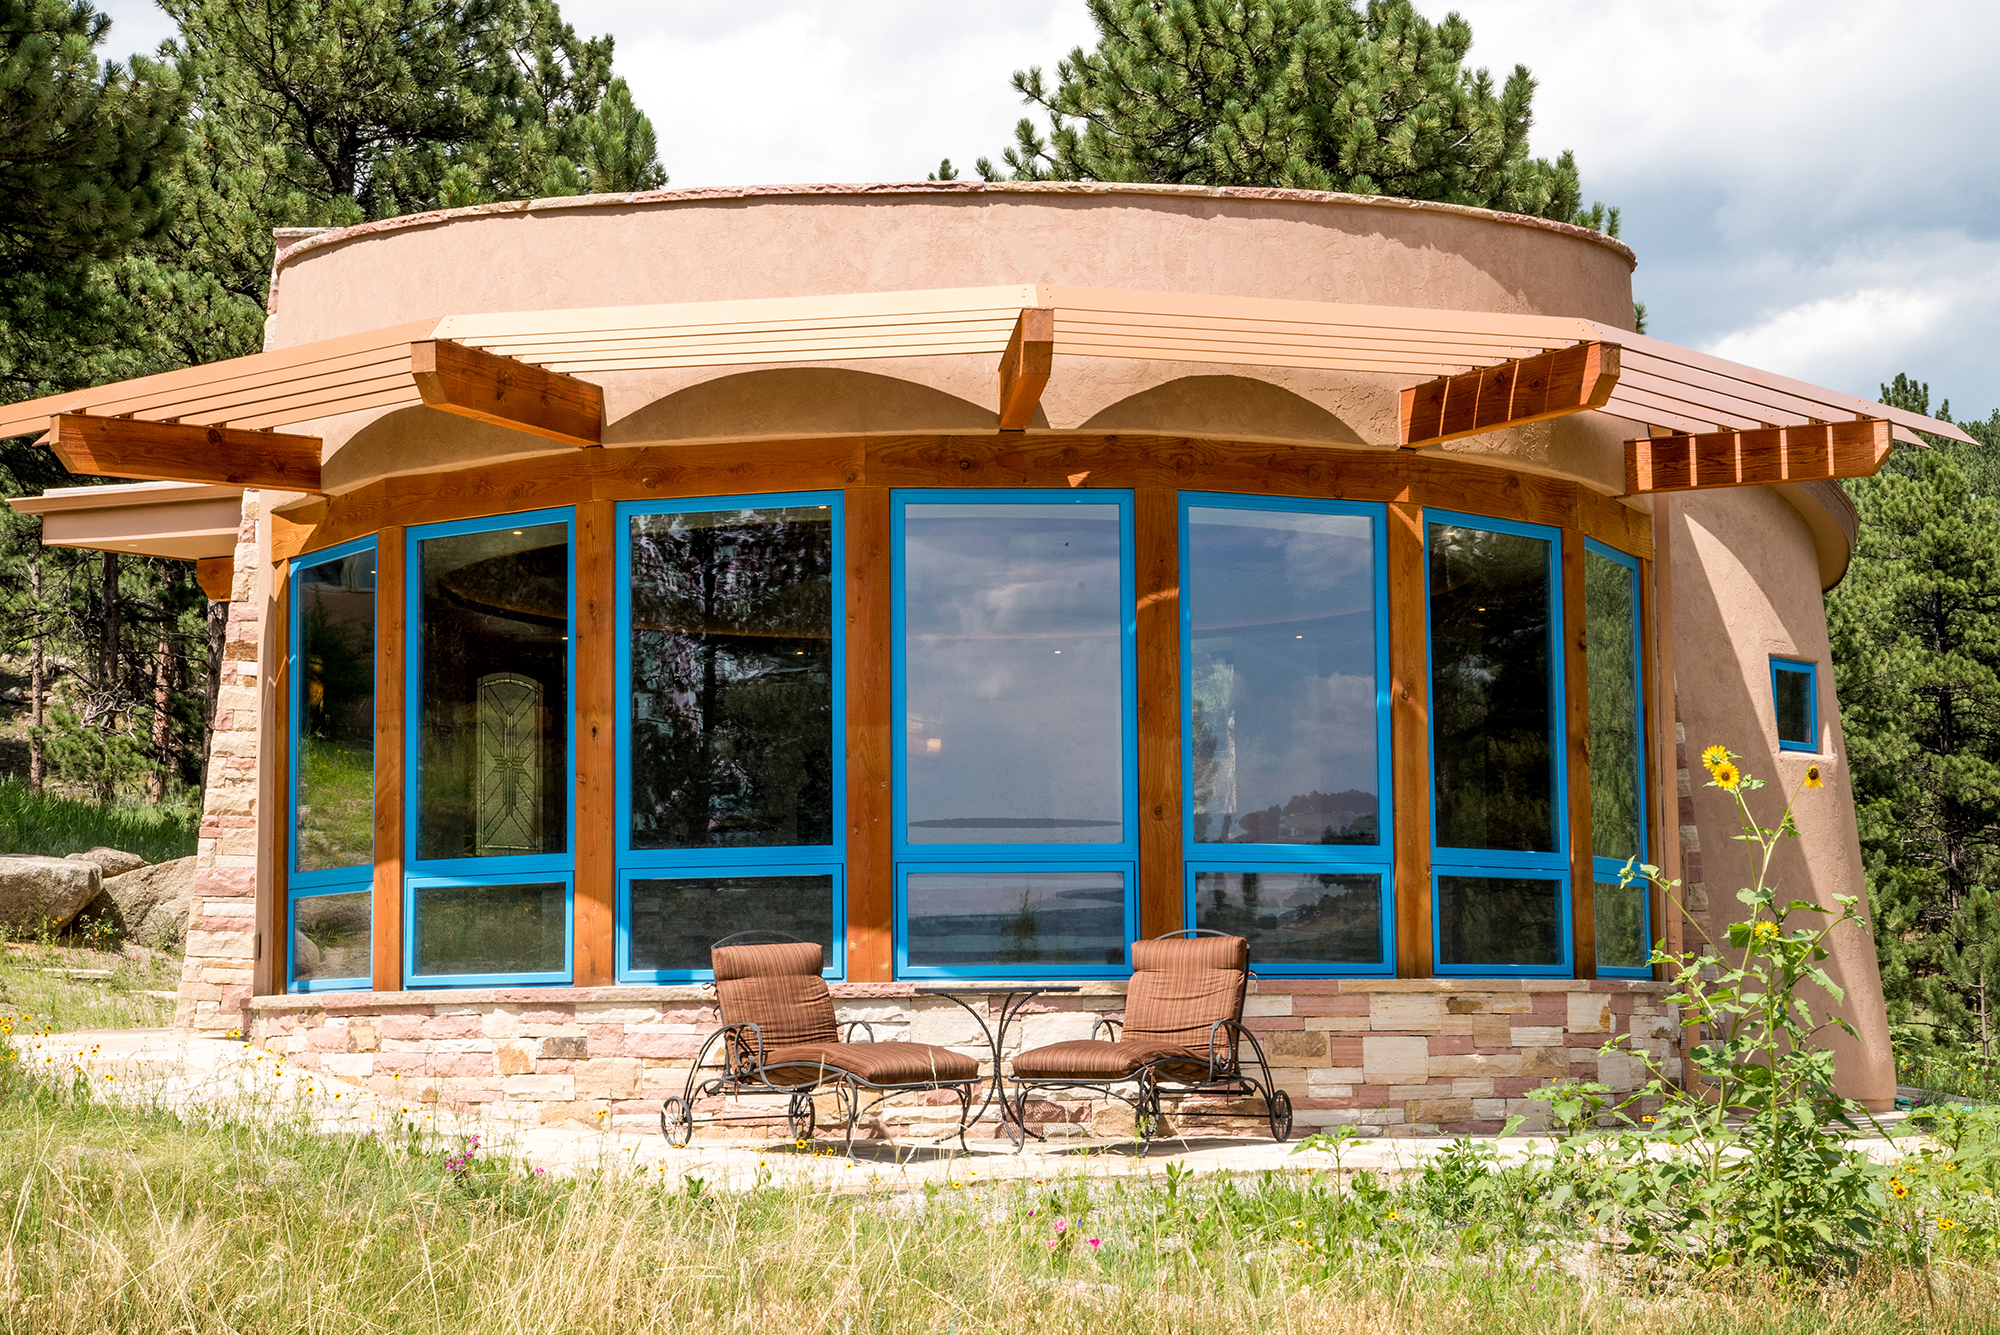 Mountain Kiva pool house with solar power and shades that reduce energy consumption by blocking afternoon sun in the summer. Built by Cottonwood Custom Builders.